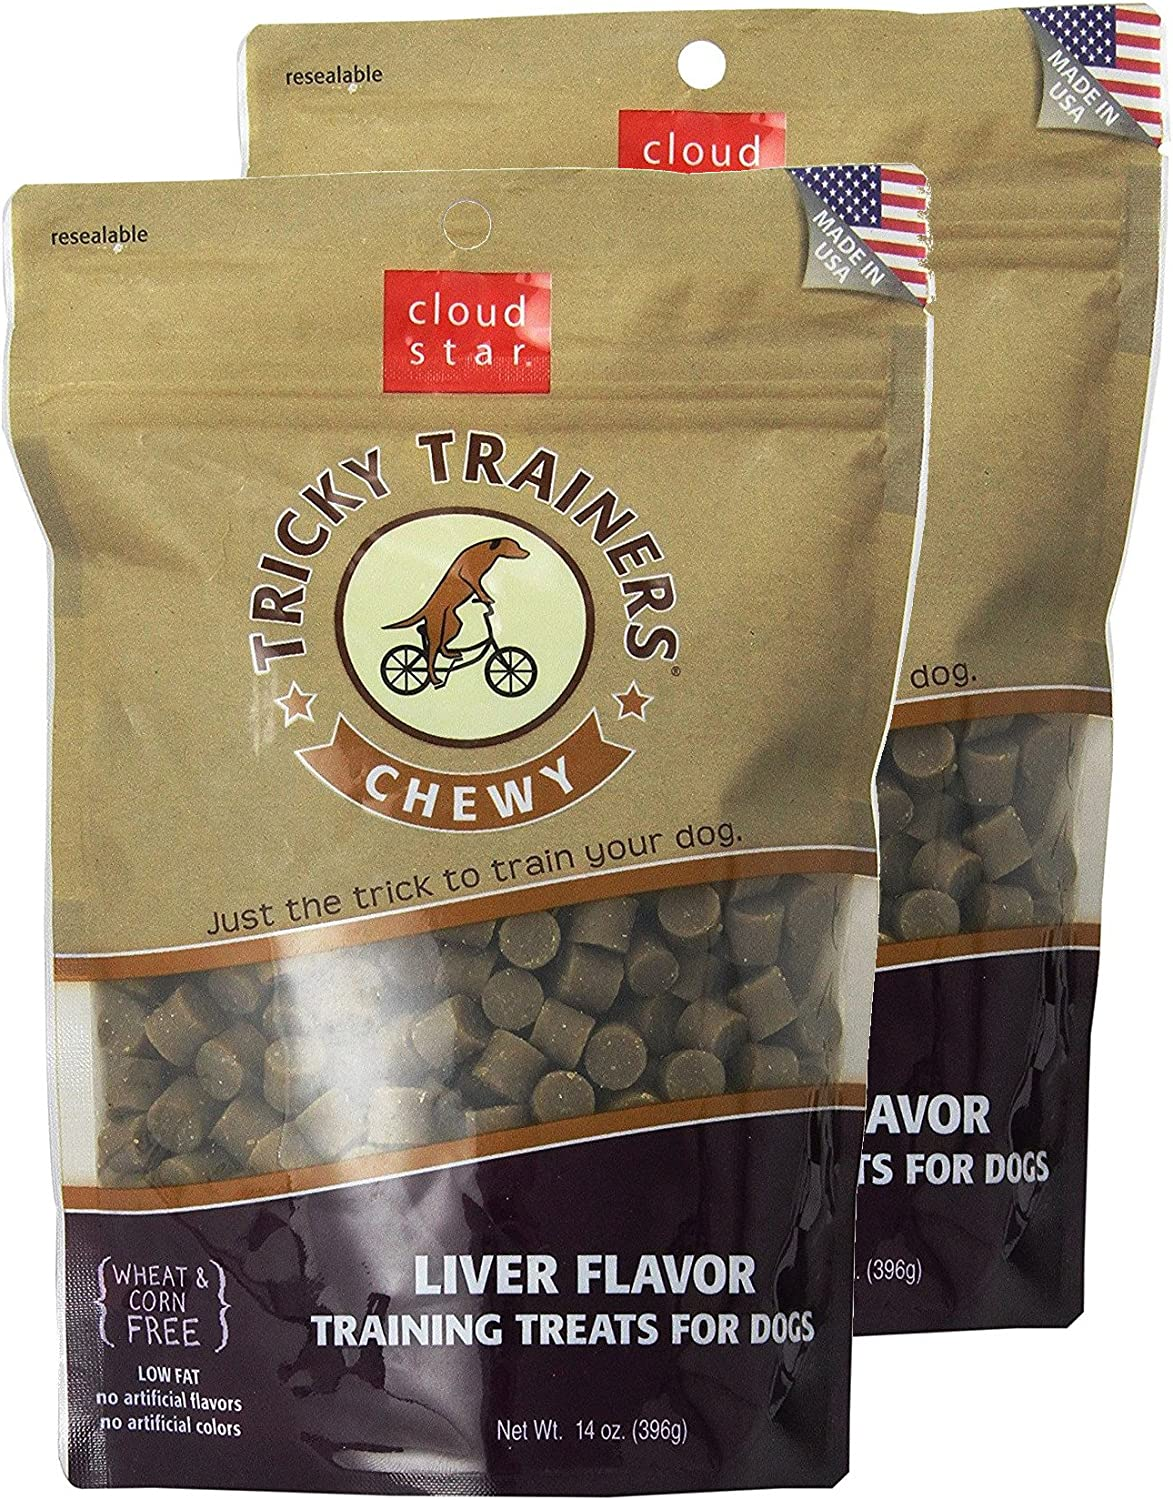 Cloud Star Chewy Tricky Trainers Liver Flavor Training Treats for Dogs (2 Pack) 14 oz Each